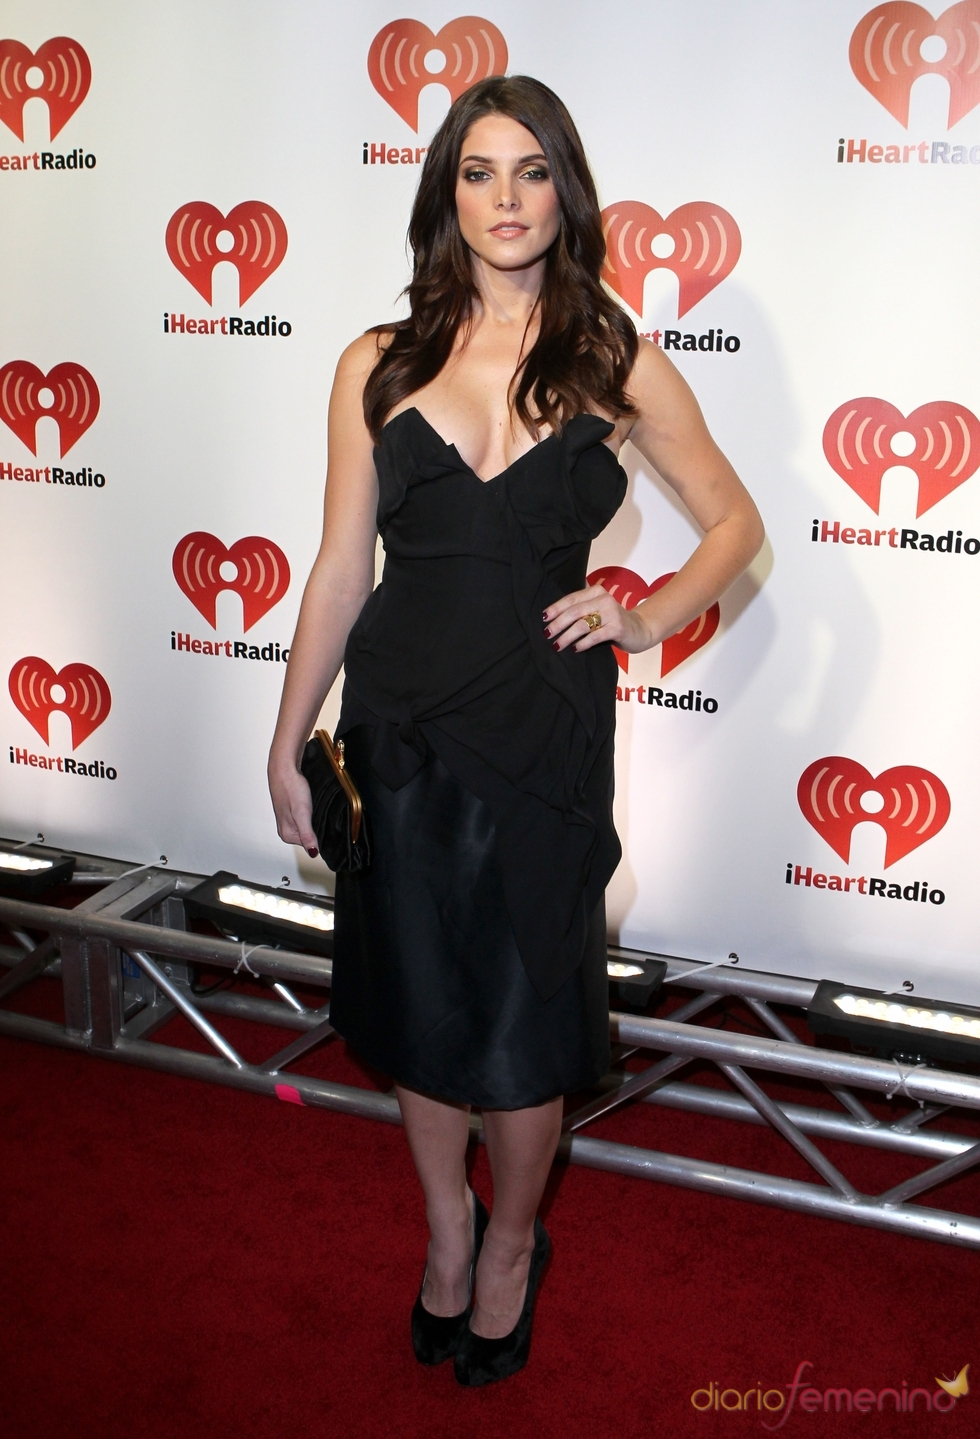 Ashley Greene en el iHeartRadio Music Festival